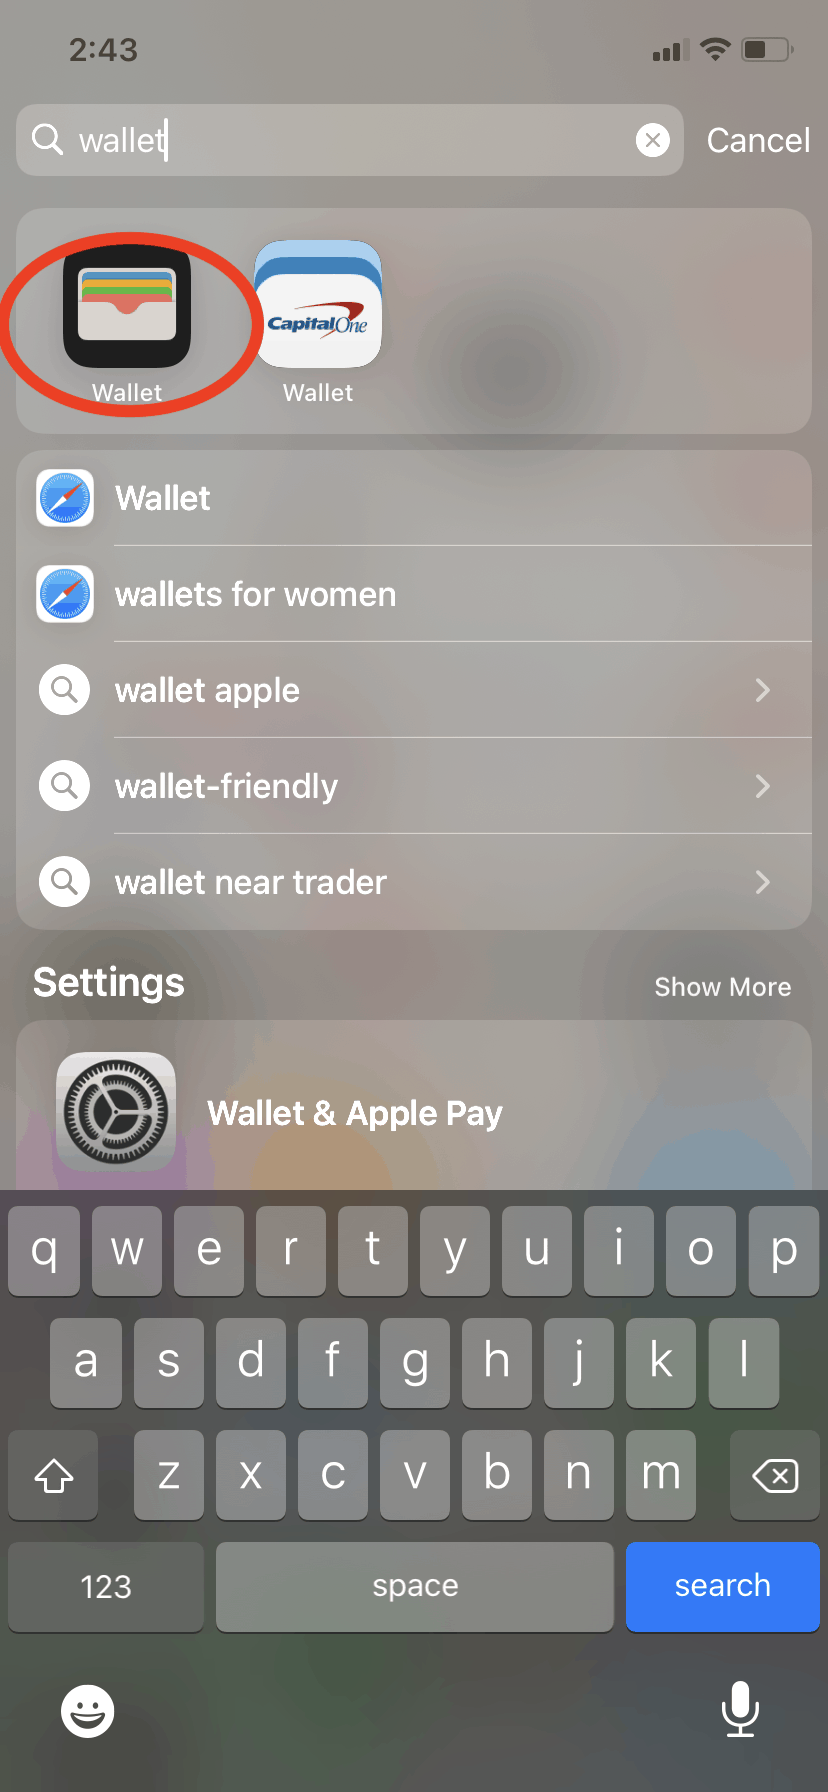 Search for the wallet app